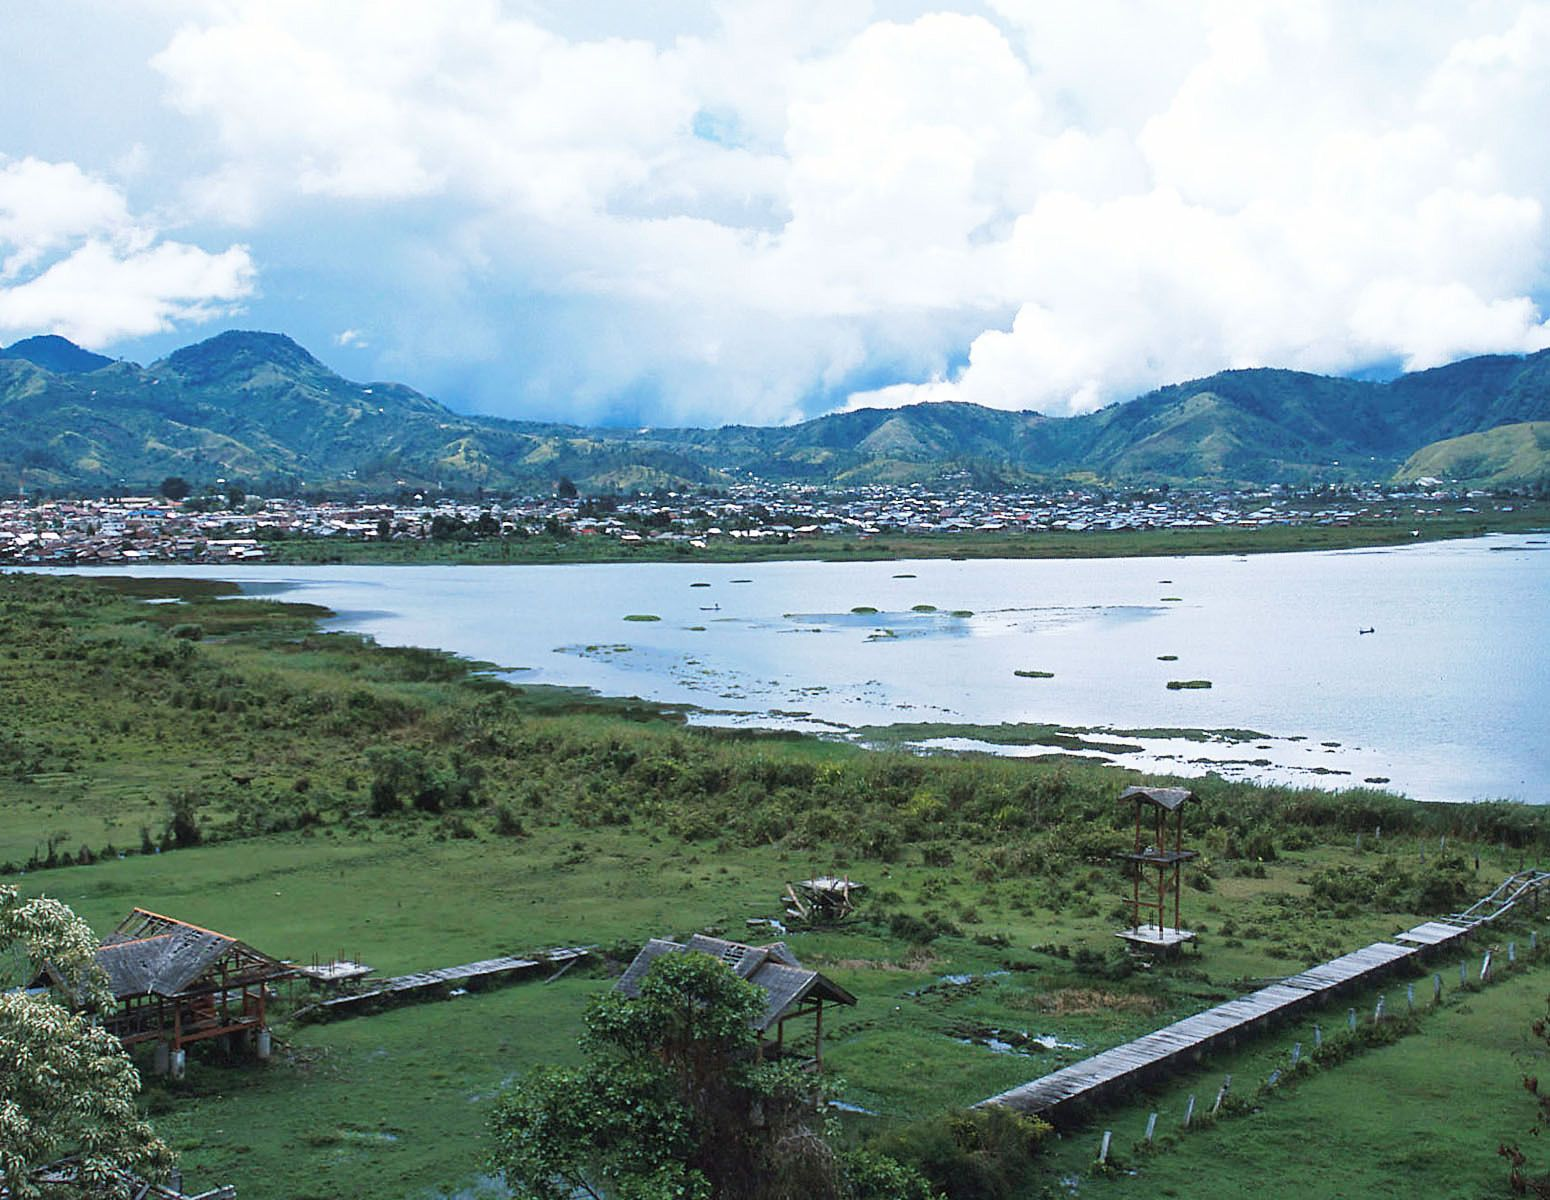 The lake Danau Laut Tawar is surrounded by mountains.This is one of the most beautiful places in Aceh. In the past, it was popular with tourists.